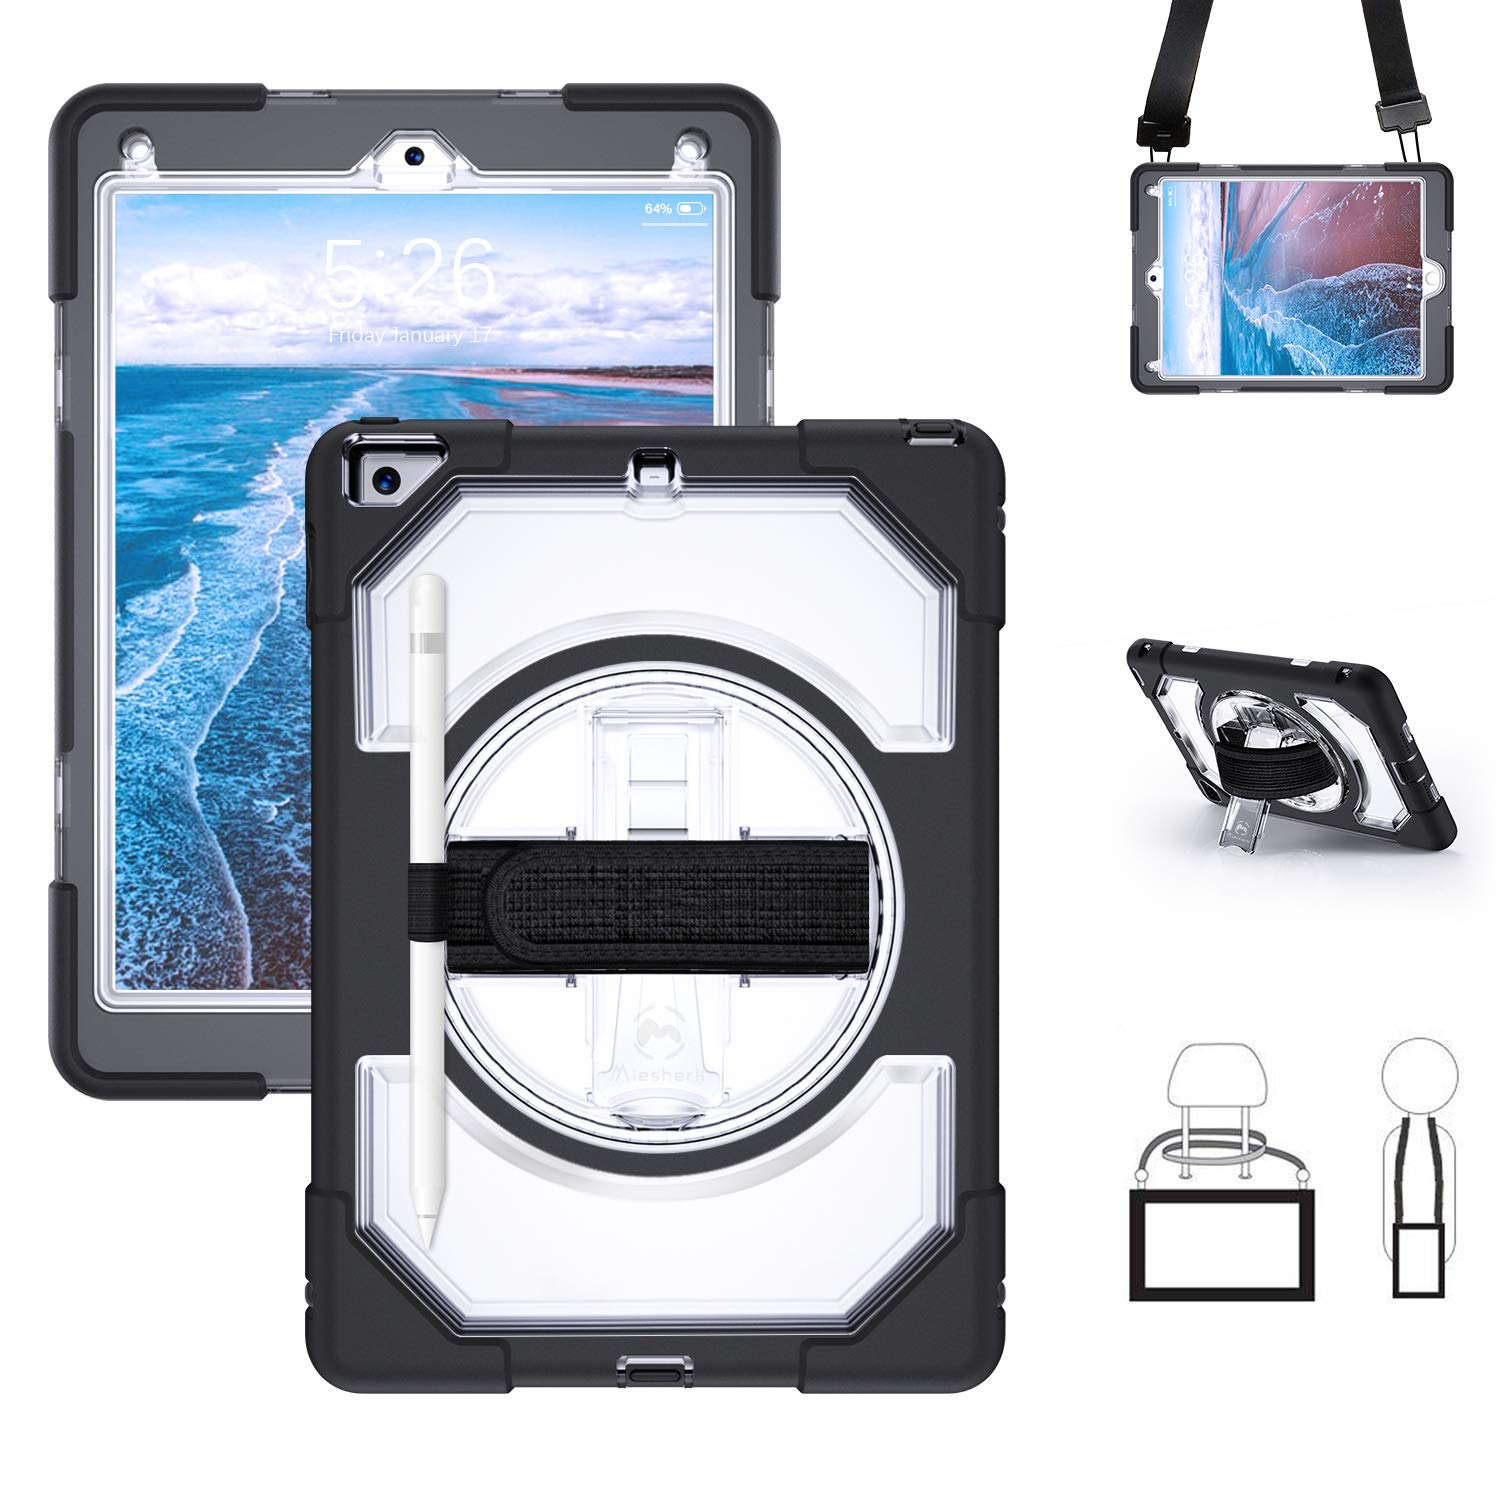 """Miesherk iPad 6th/5th Generation 9.7 Case, 360 Rotating Stand Three Layer Hybrid Drop Protection Case with Pencil Holder Hand Strap Shoulder Strap for iPad 9.7"""" 2017/2018, Clear Black"""